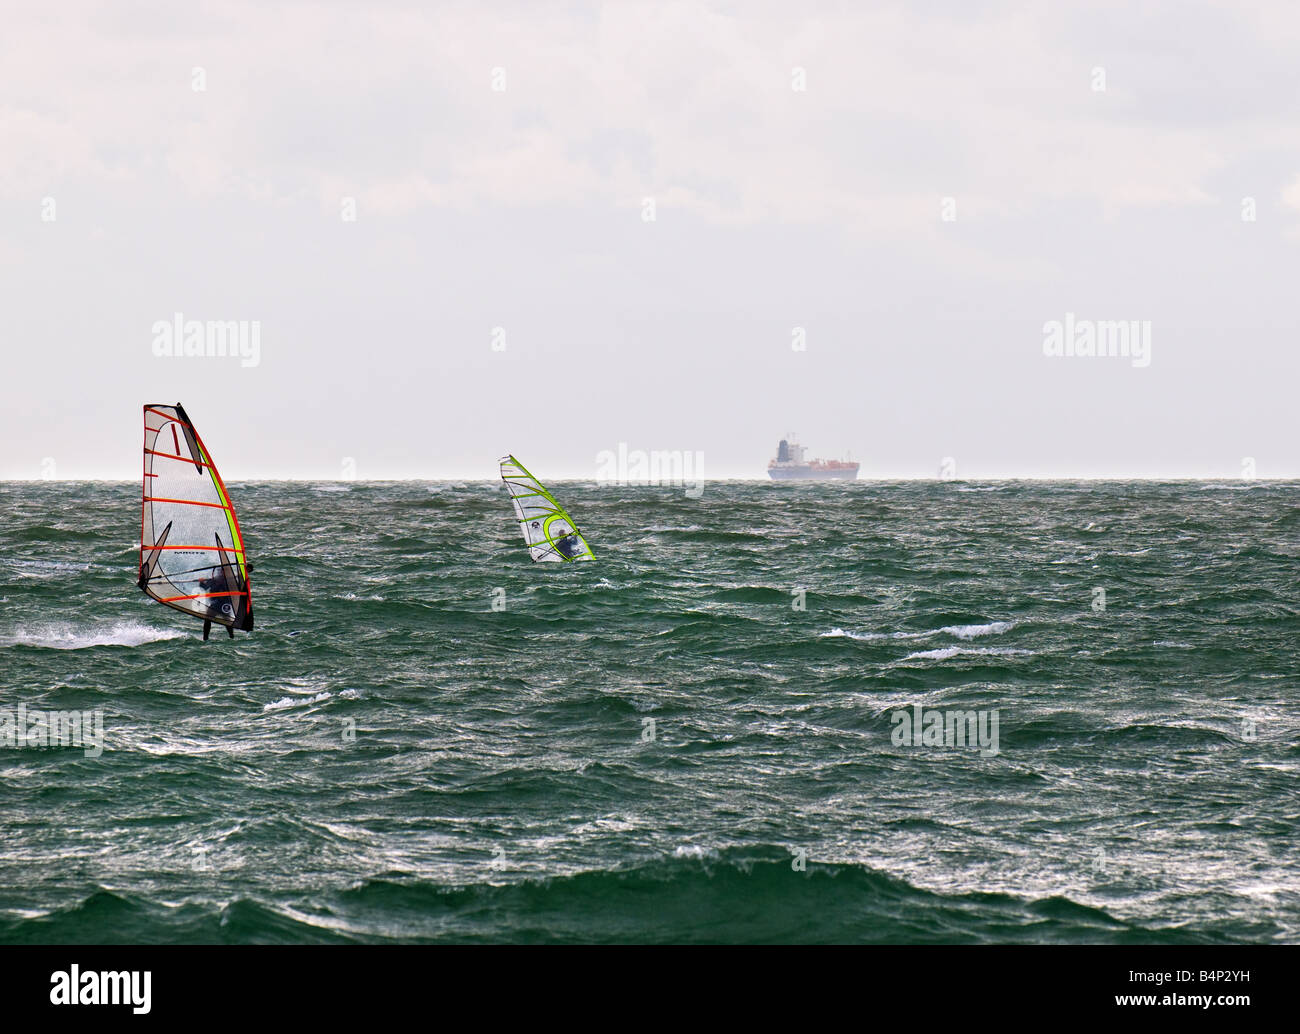 Two windsurfers in the Solent with shipping in the far distance. - Stock Image